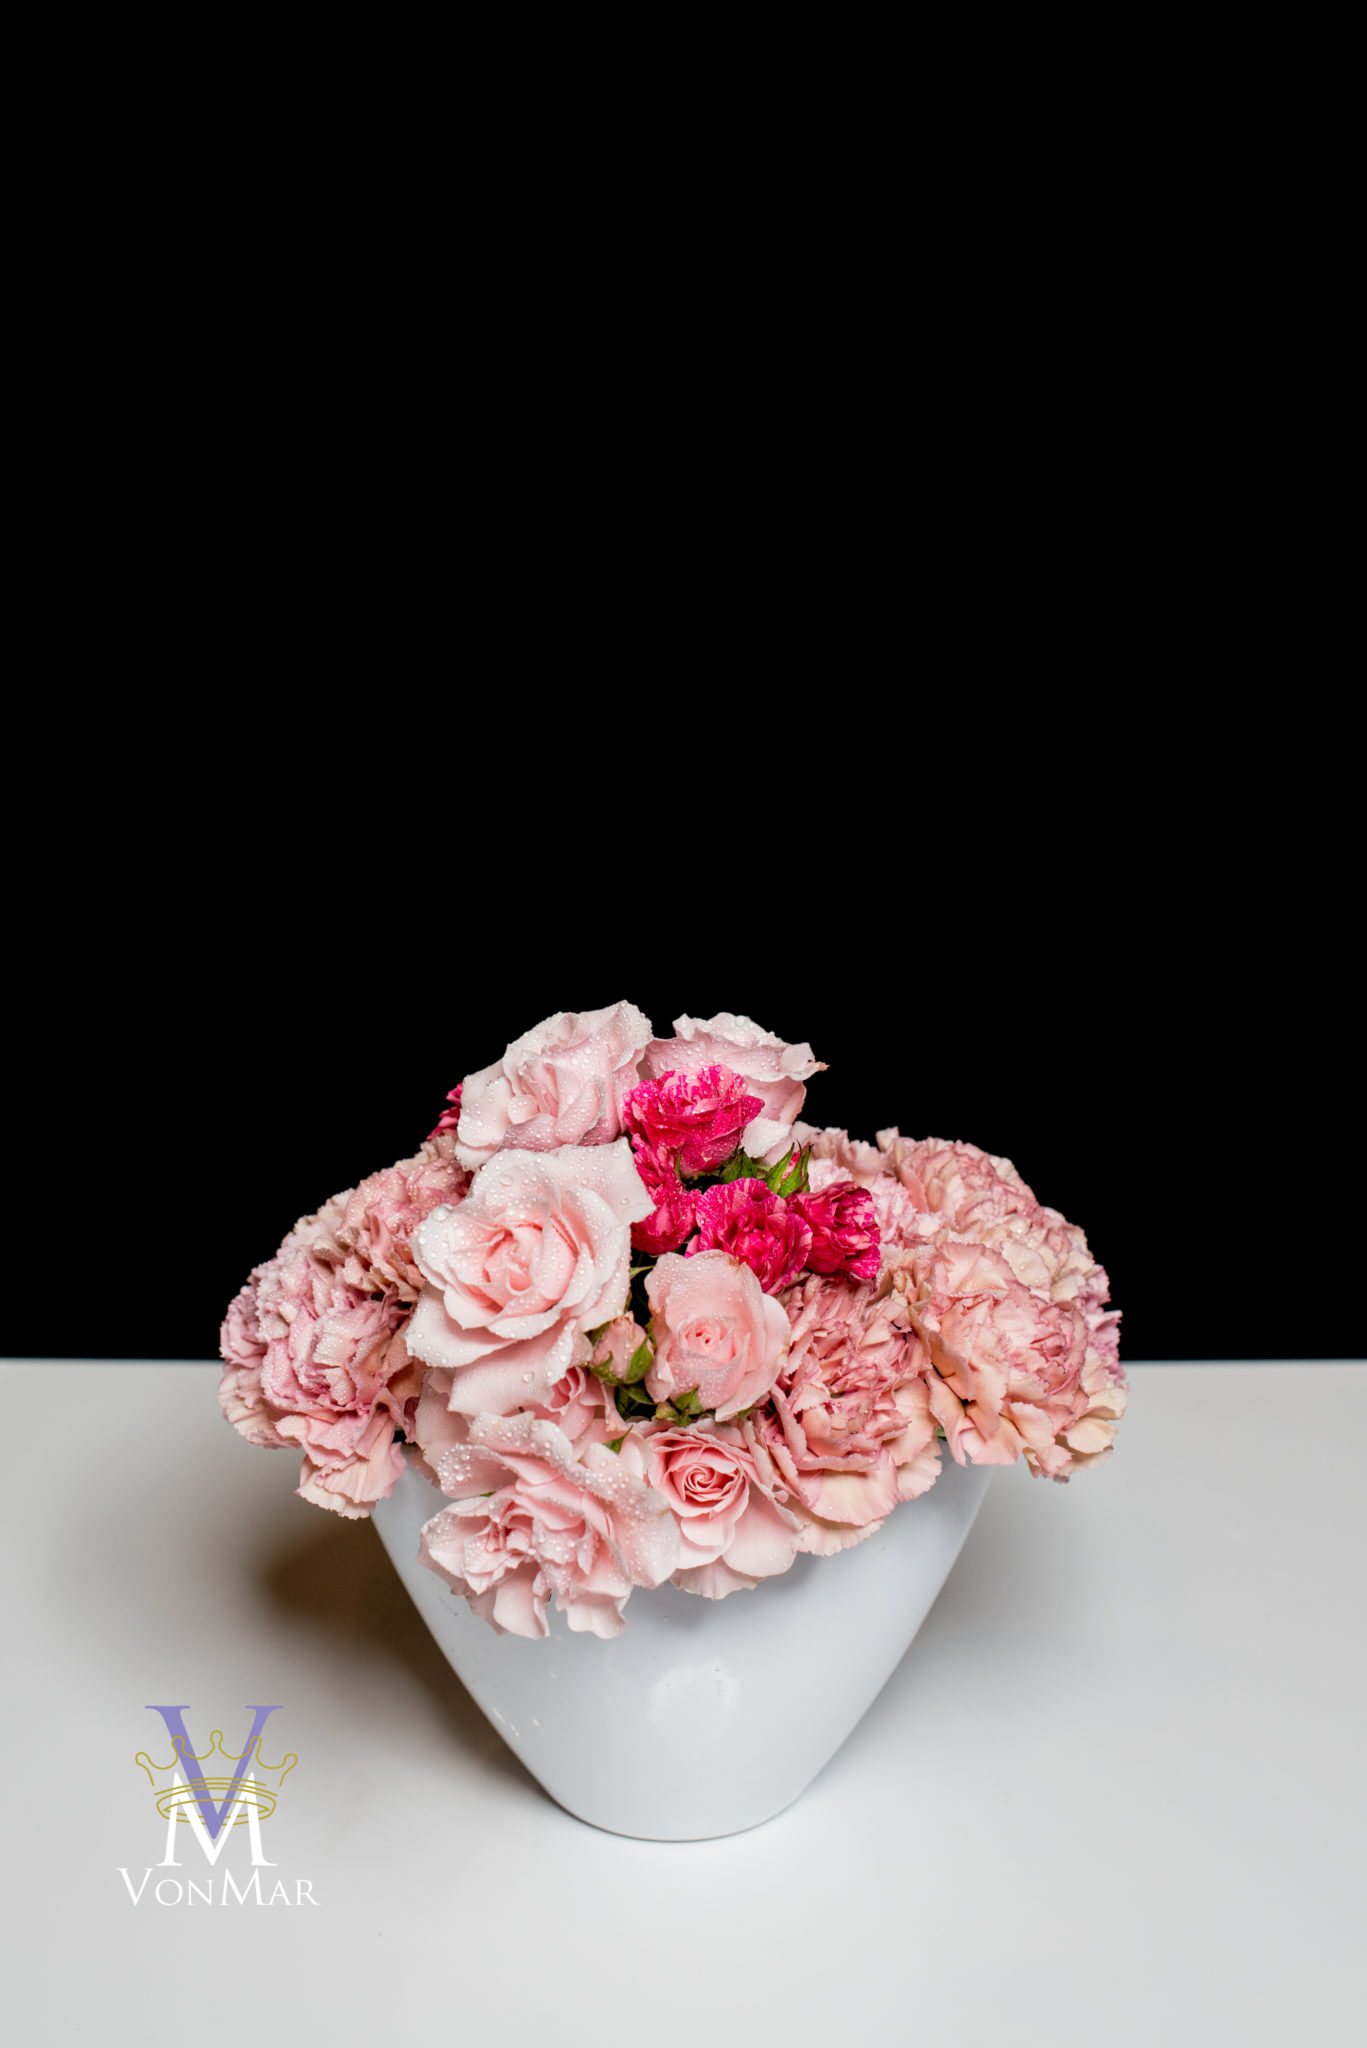 Carnation and spray rose mounded design